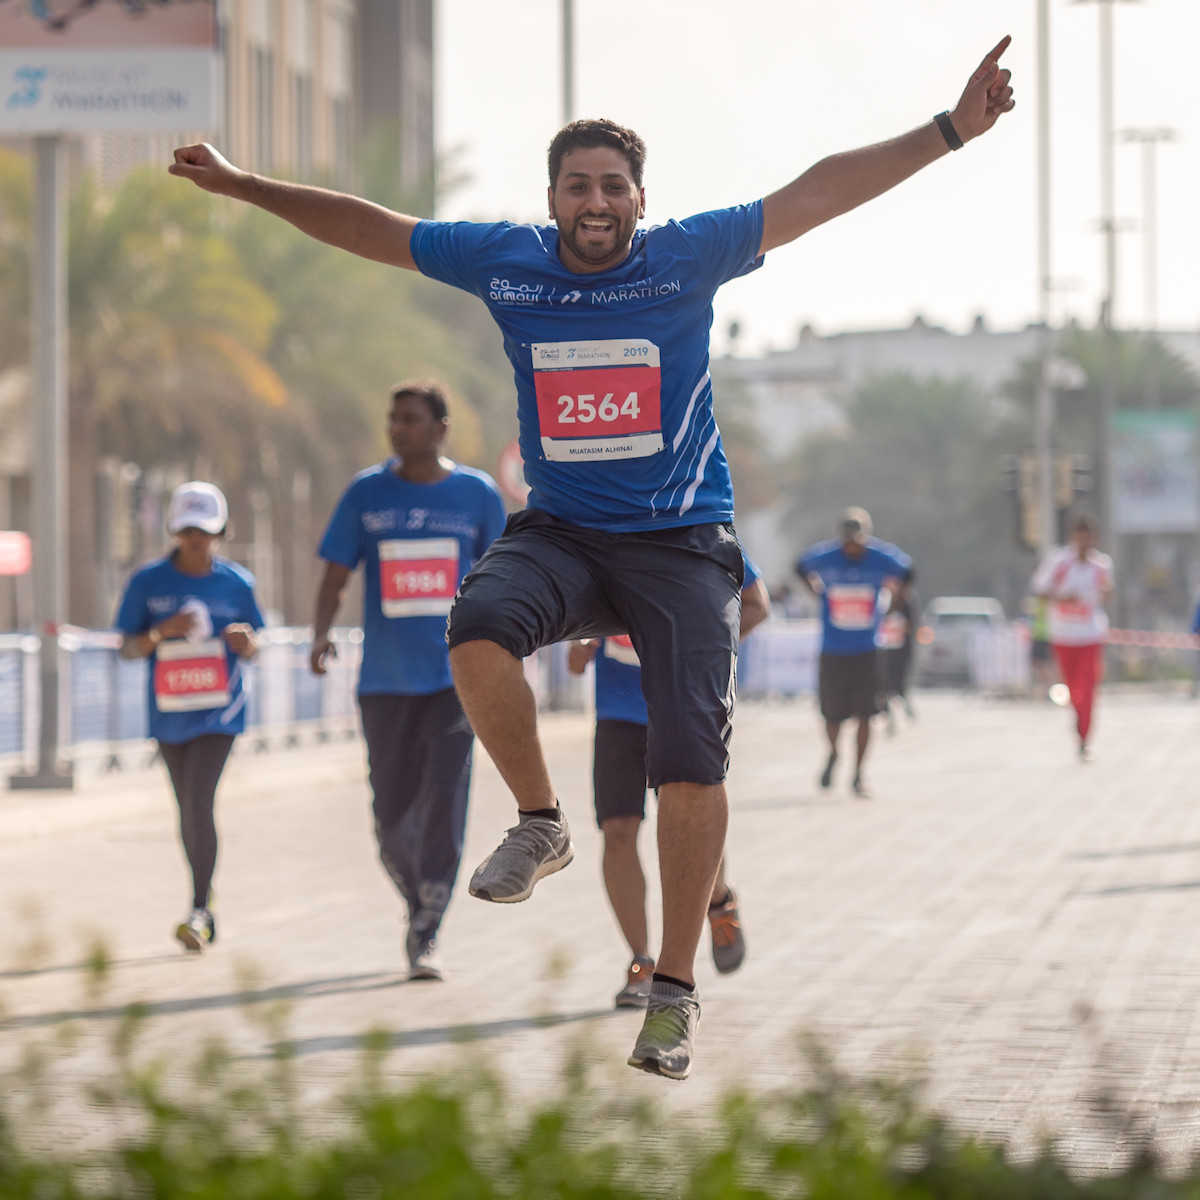 More than 10,000 to take part in the biggest ever Al Mouj Muscat Marathon